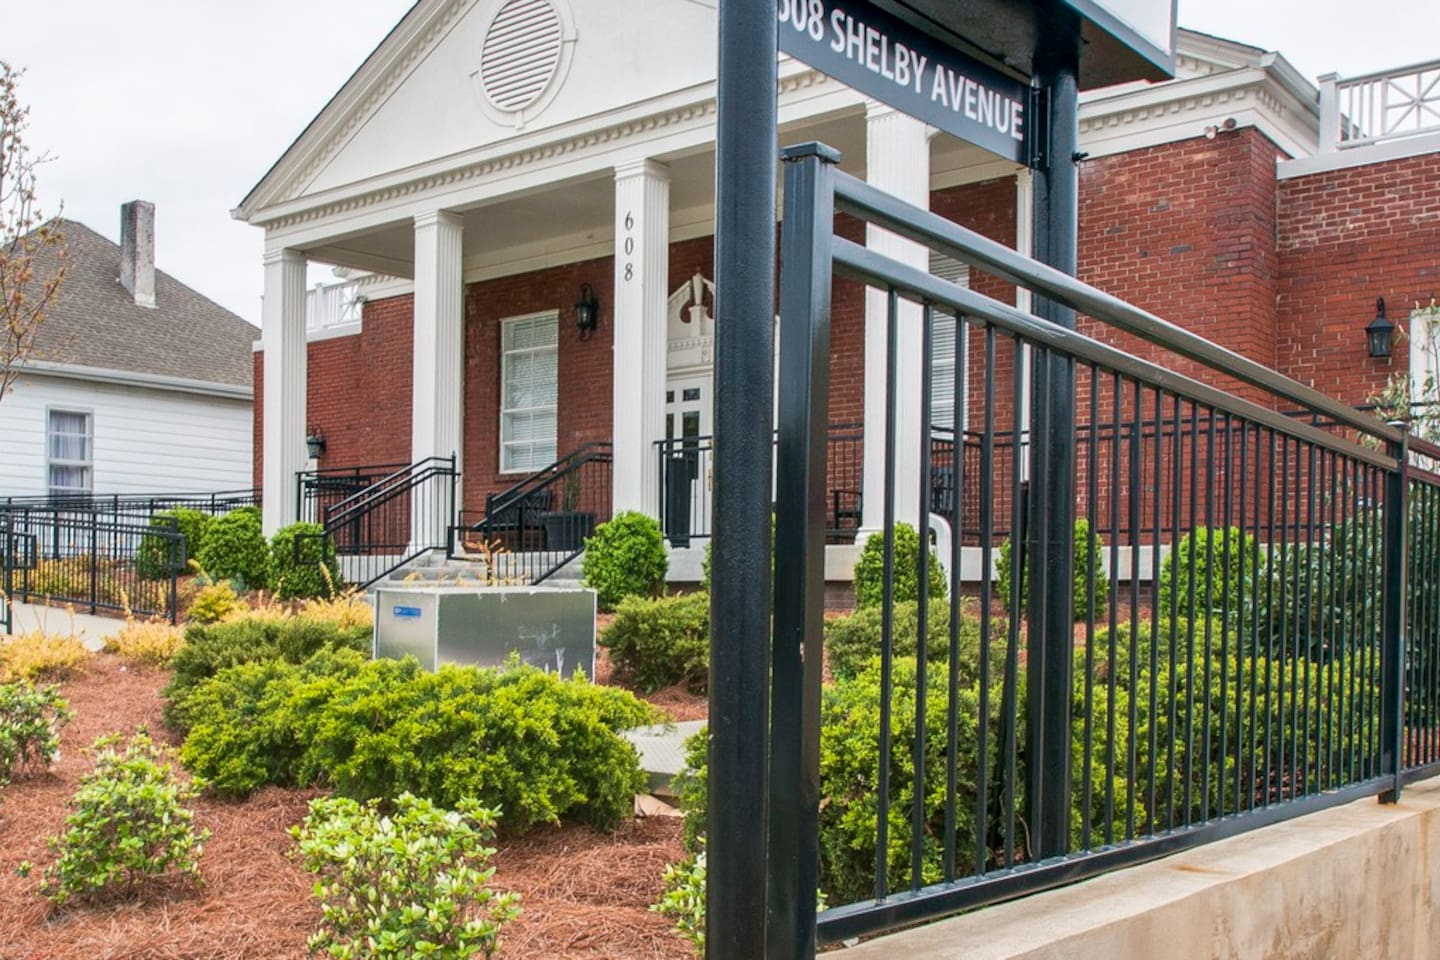 Each condo is attached to this beautifully restored historic church in East Nashville.